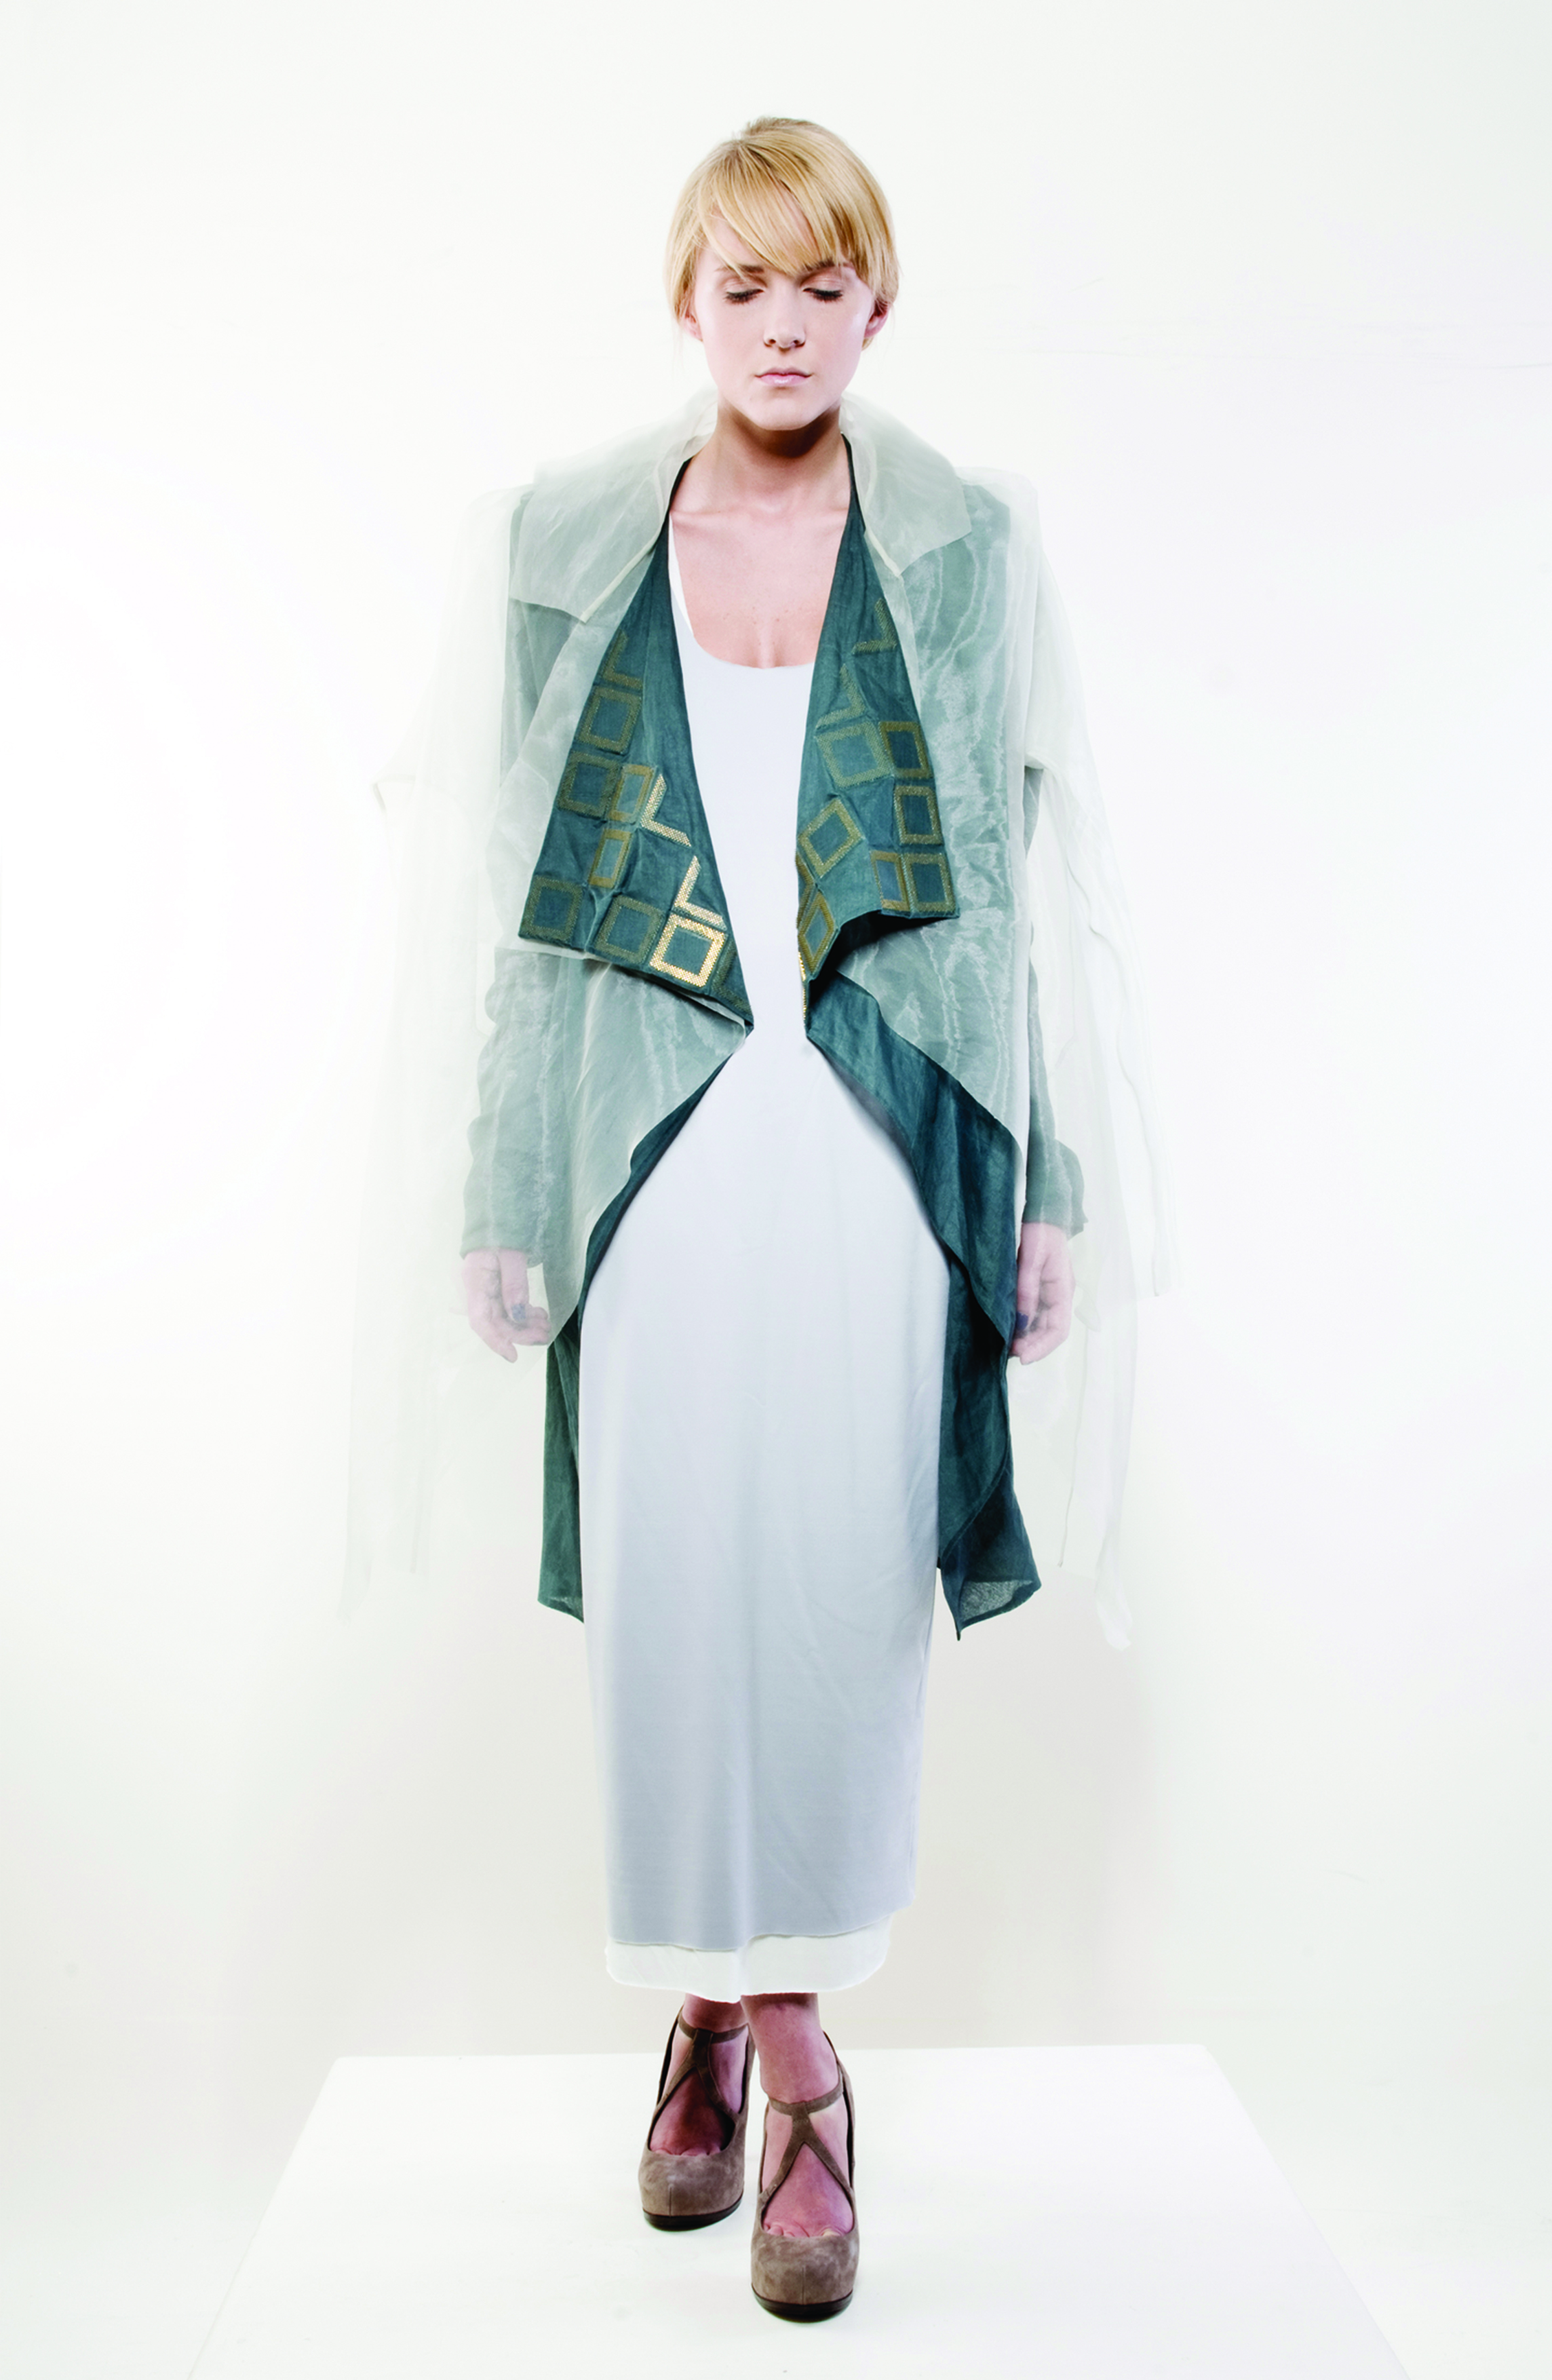 outfit-6a-Gravity-and-Levitation-Spring-Summer-Collection-Isabel-Wong-light-green-organza-jacket-Gold-CPU.jpg